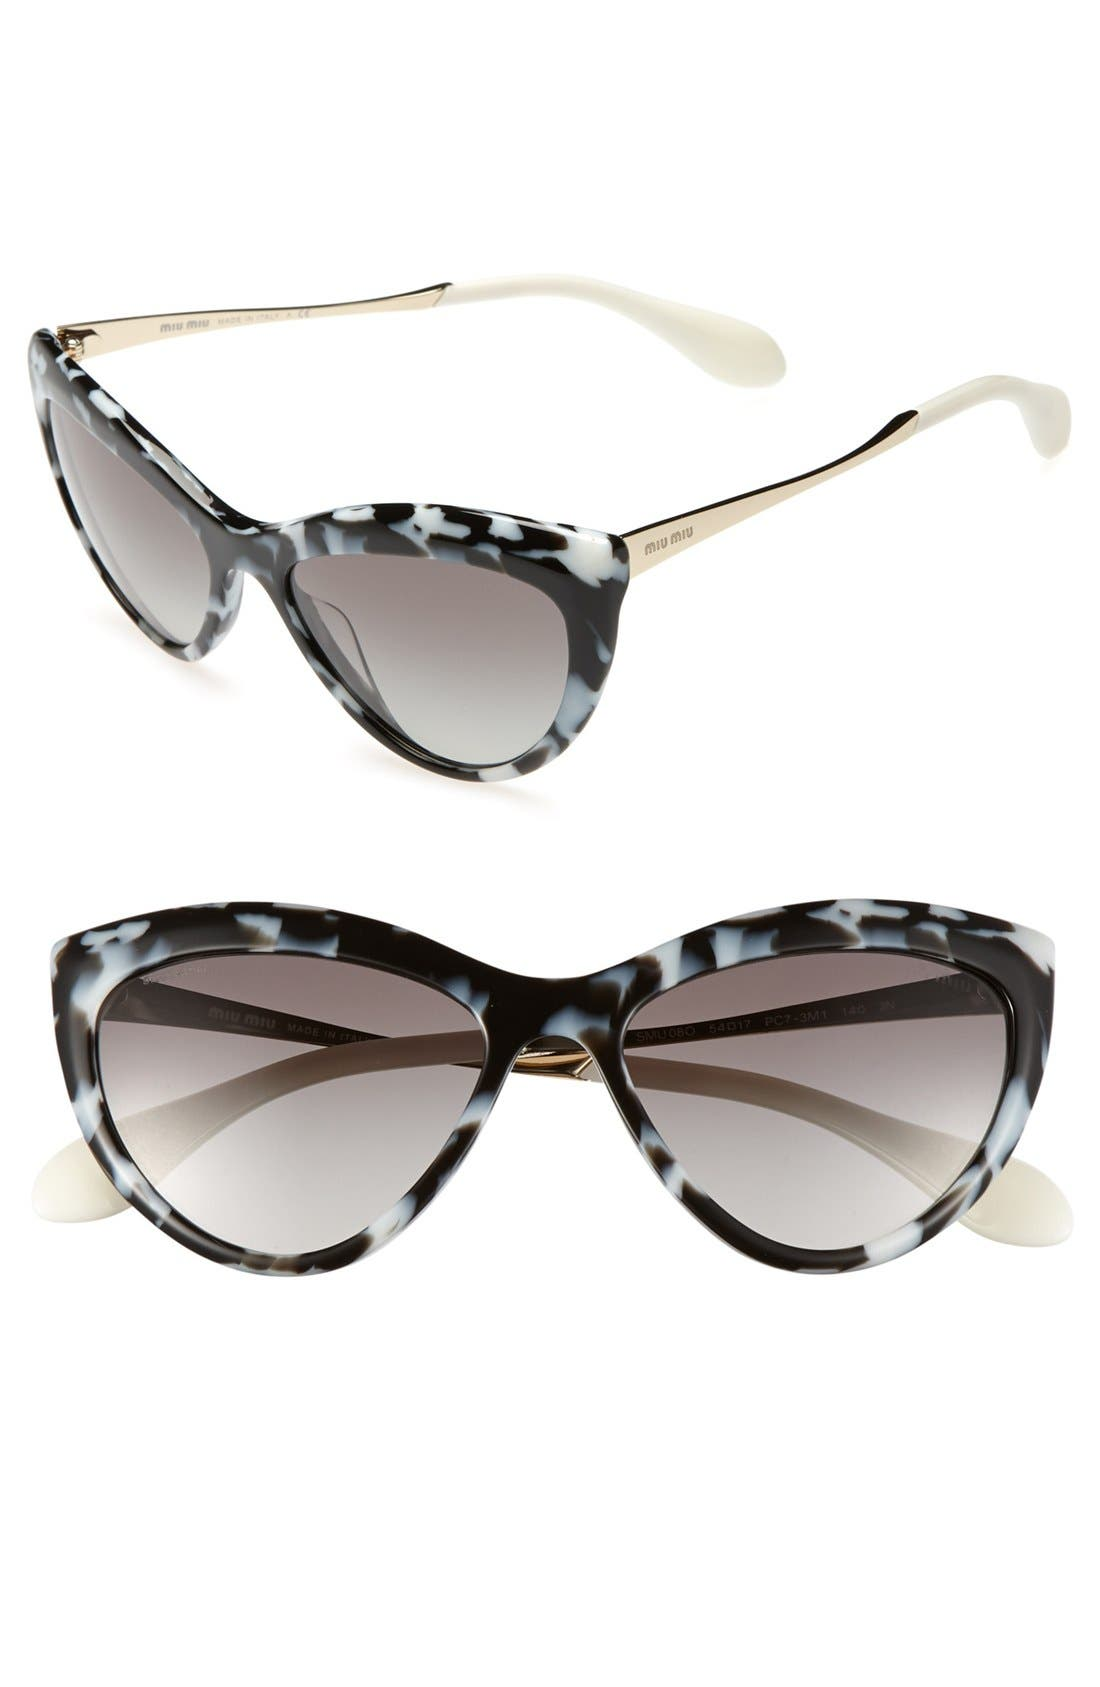 Main Image - Miu Miu 54mm Cat Eye Sunglasses